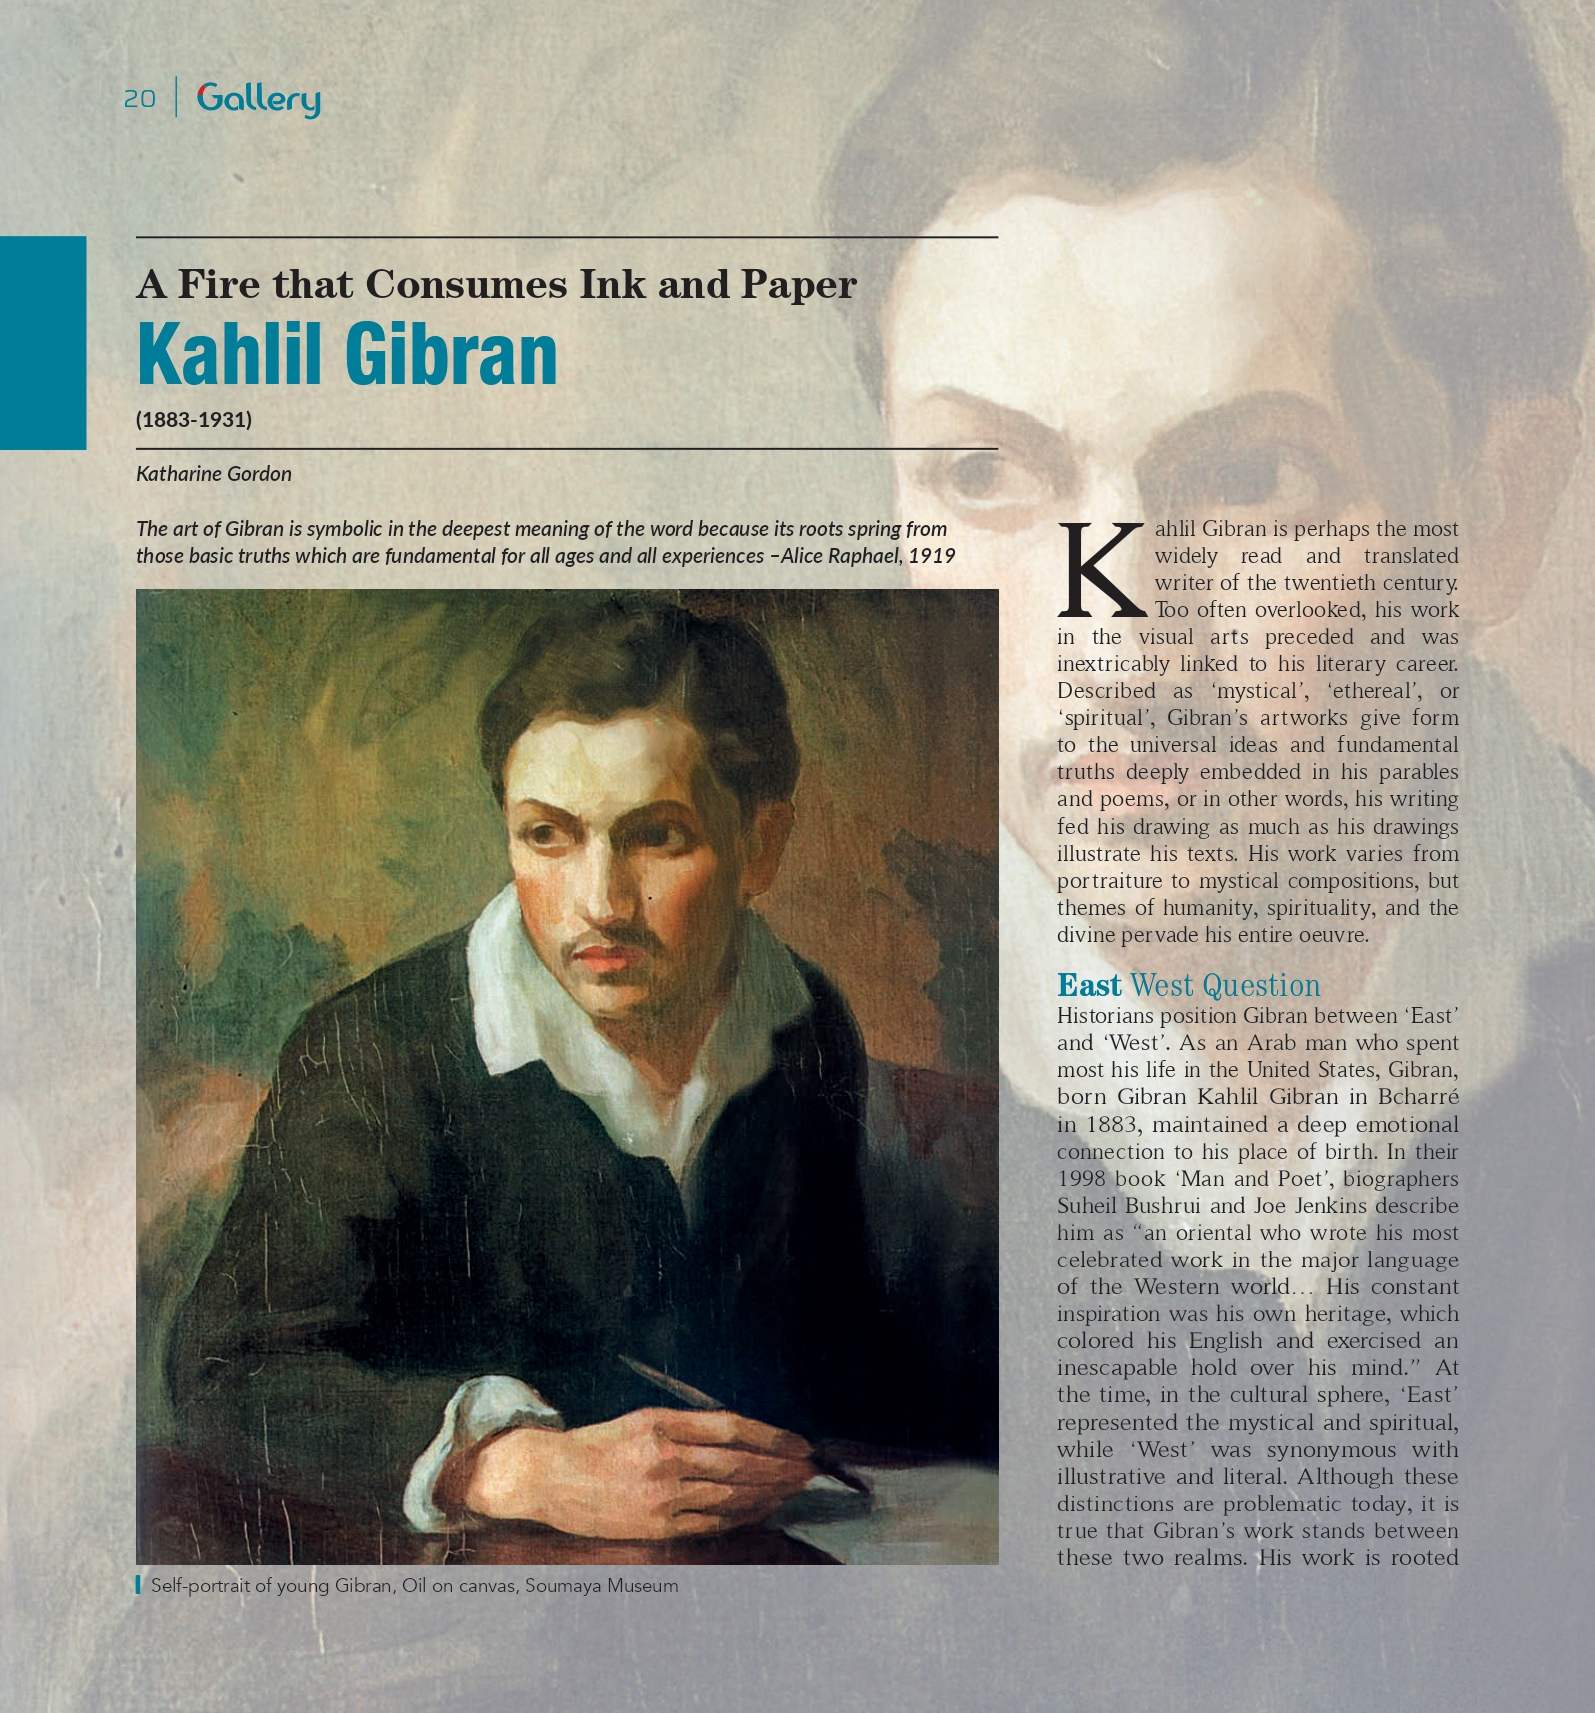 Katharine Gordon, Kahlil Gibran: A Fire that Consumes Ink and Paper, «Gallery», Issue 06, Winter 2020, pp. 20-35.